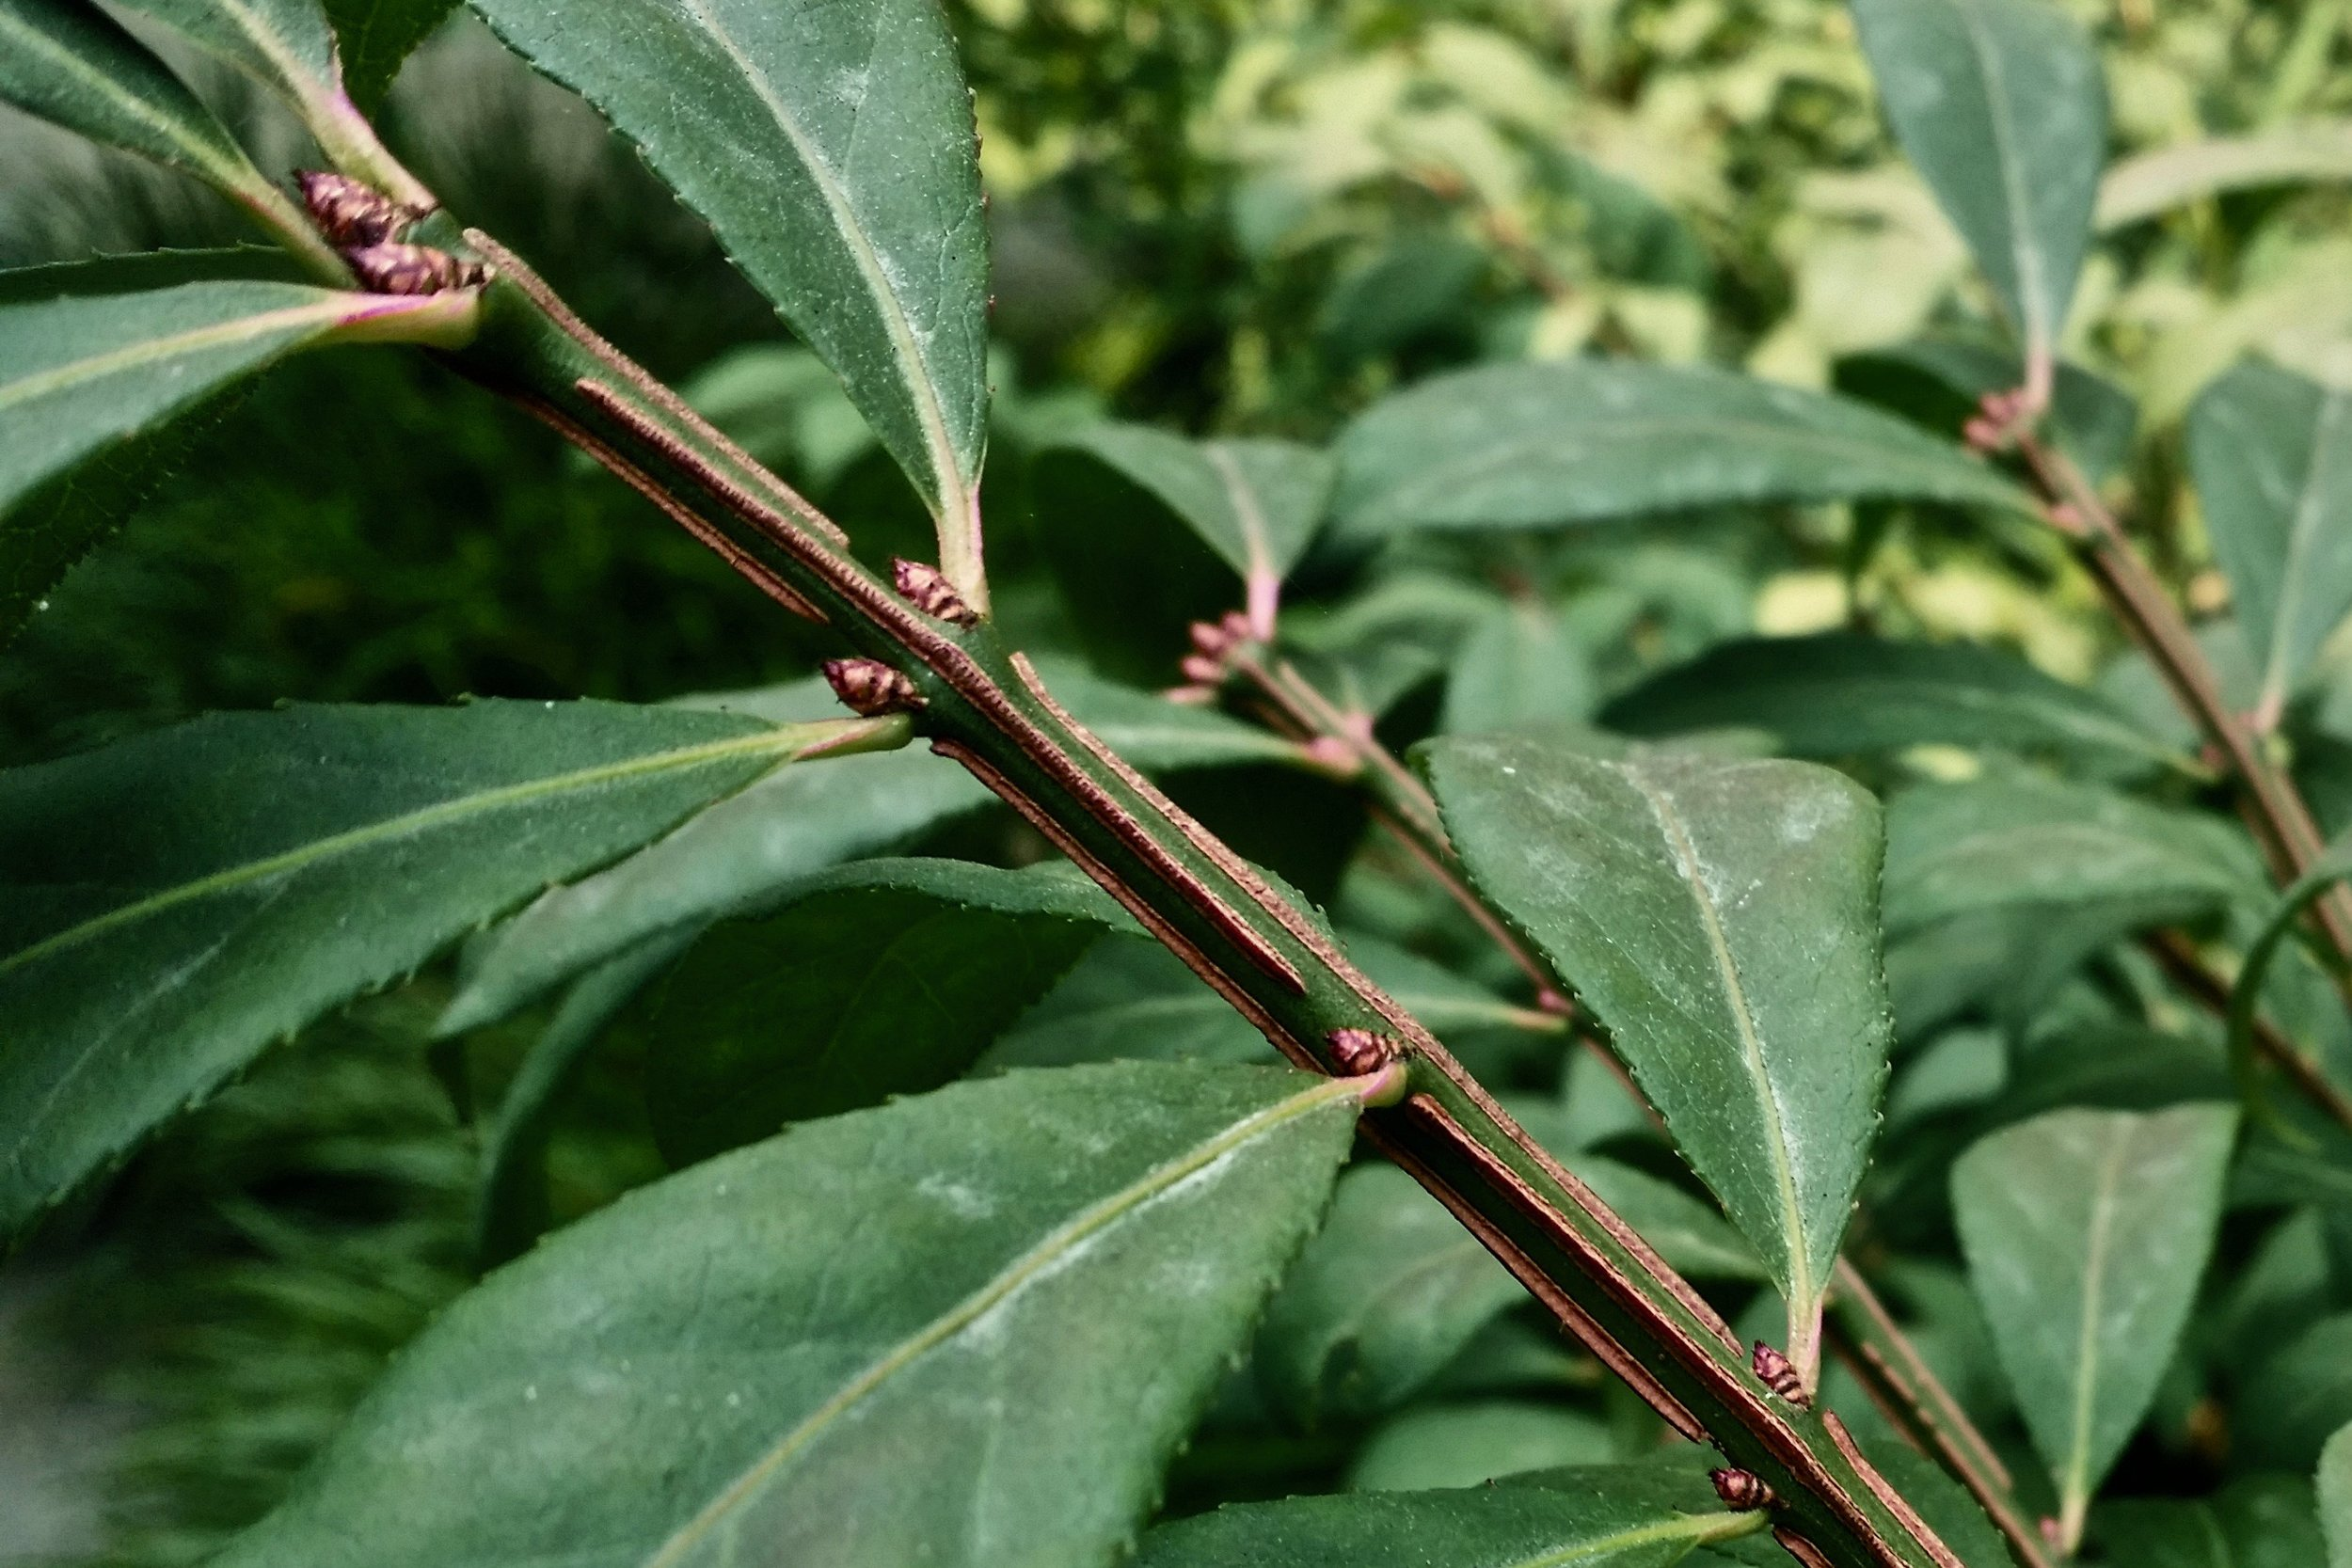 Closeup of foliage and winged stem (Corinne Kennedy, 8/19/18)